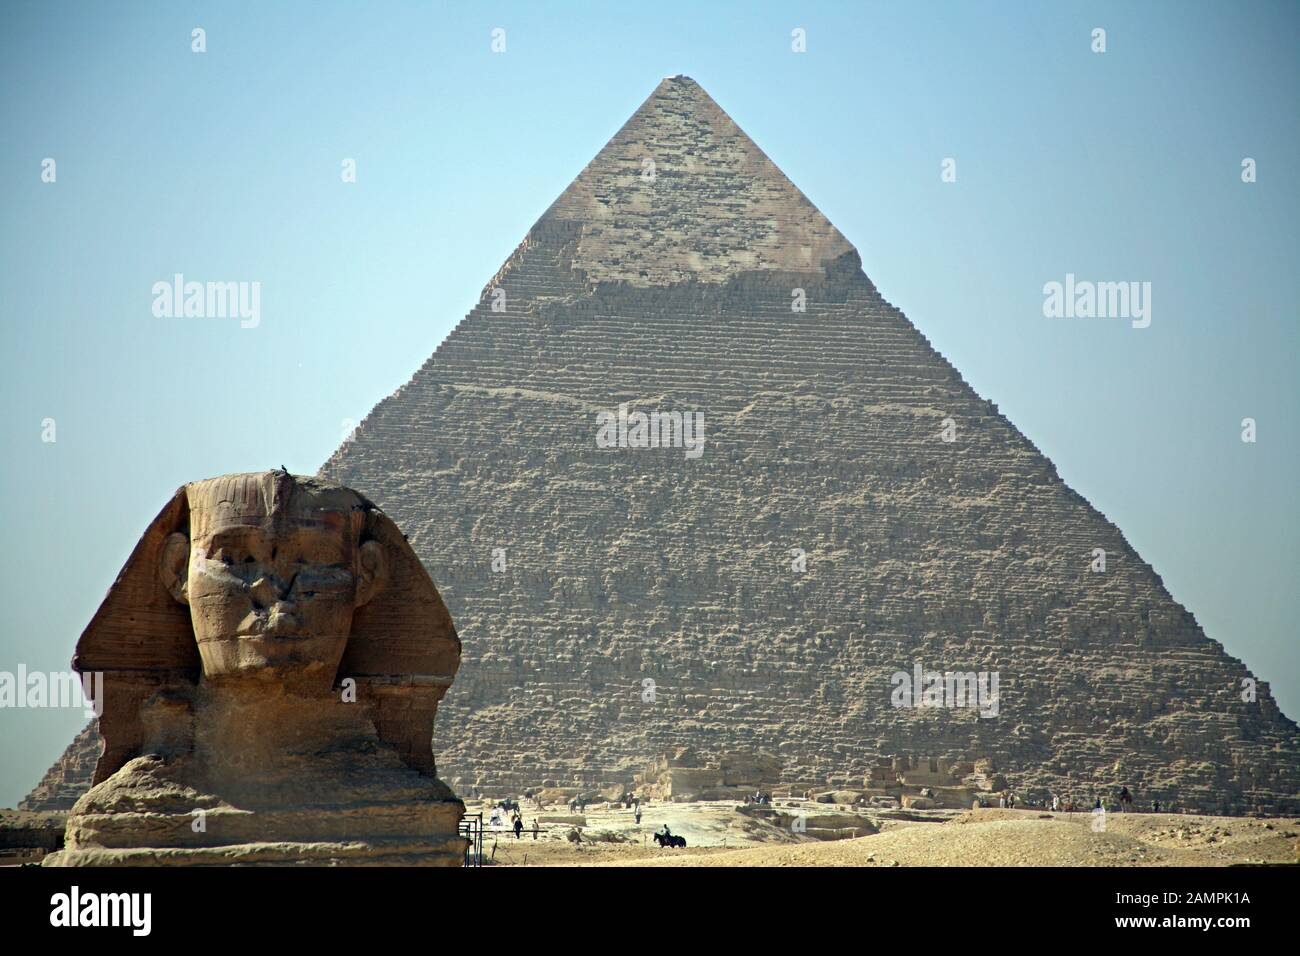 The Pyramids And Sphinx Giza Plateau Cairo Egypt Stock Photo Alamy